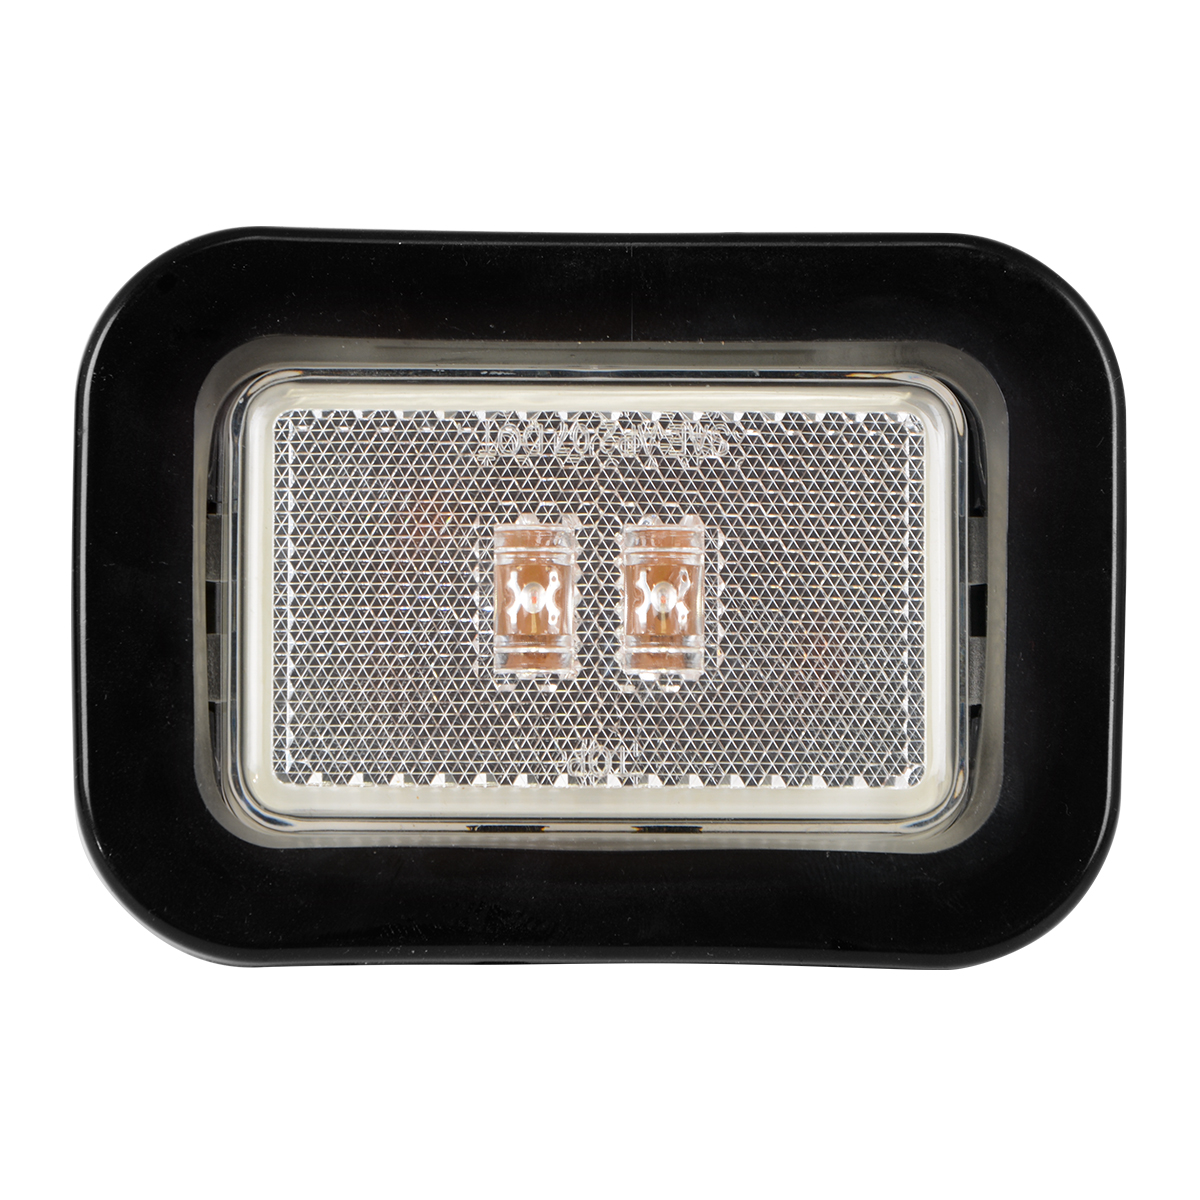 78597 Rectangular Marker LED in Reflector Lens with Grommet and Pigtail